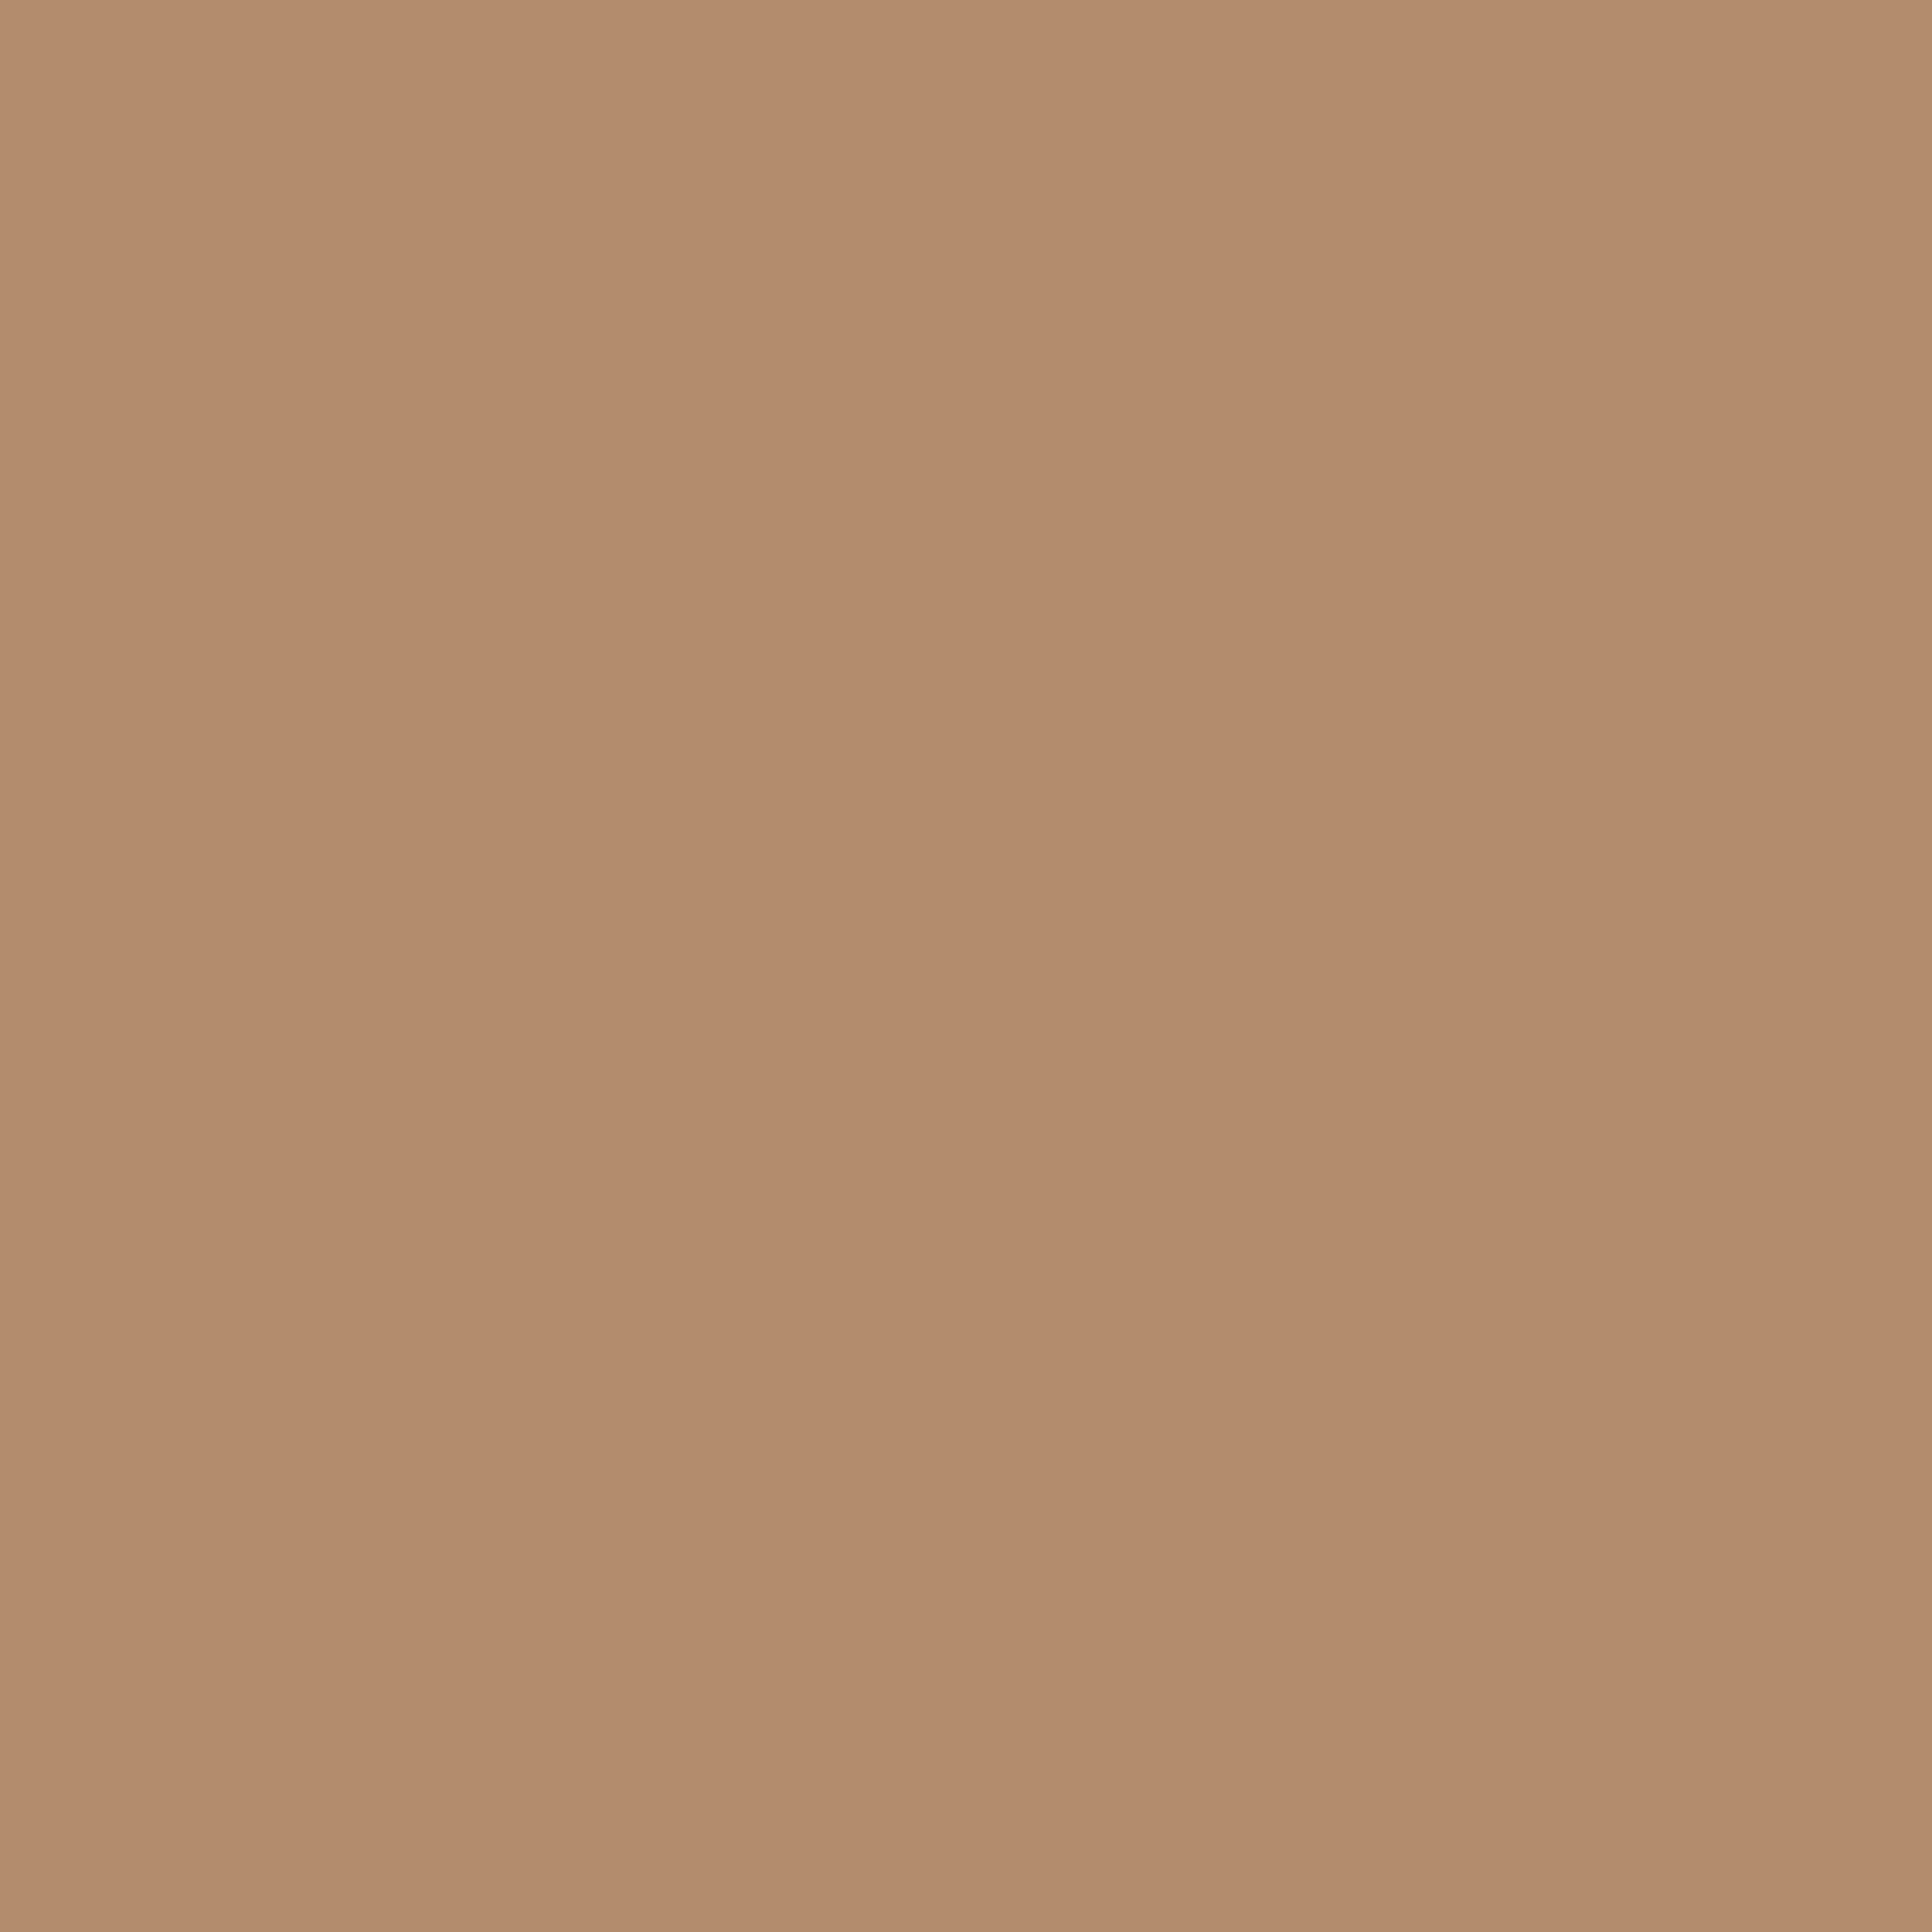 2732x2732 Light Taupe Solid Color Background